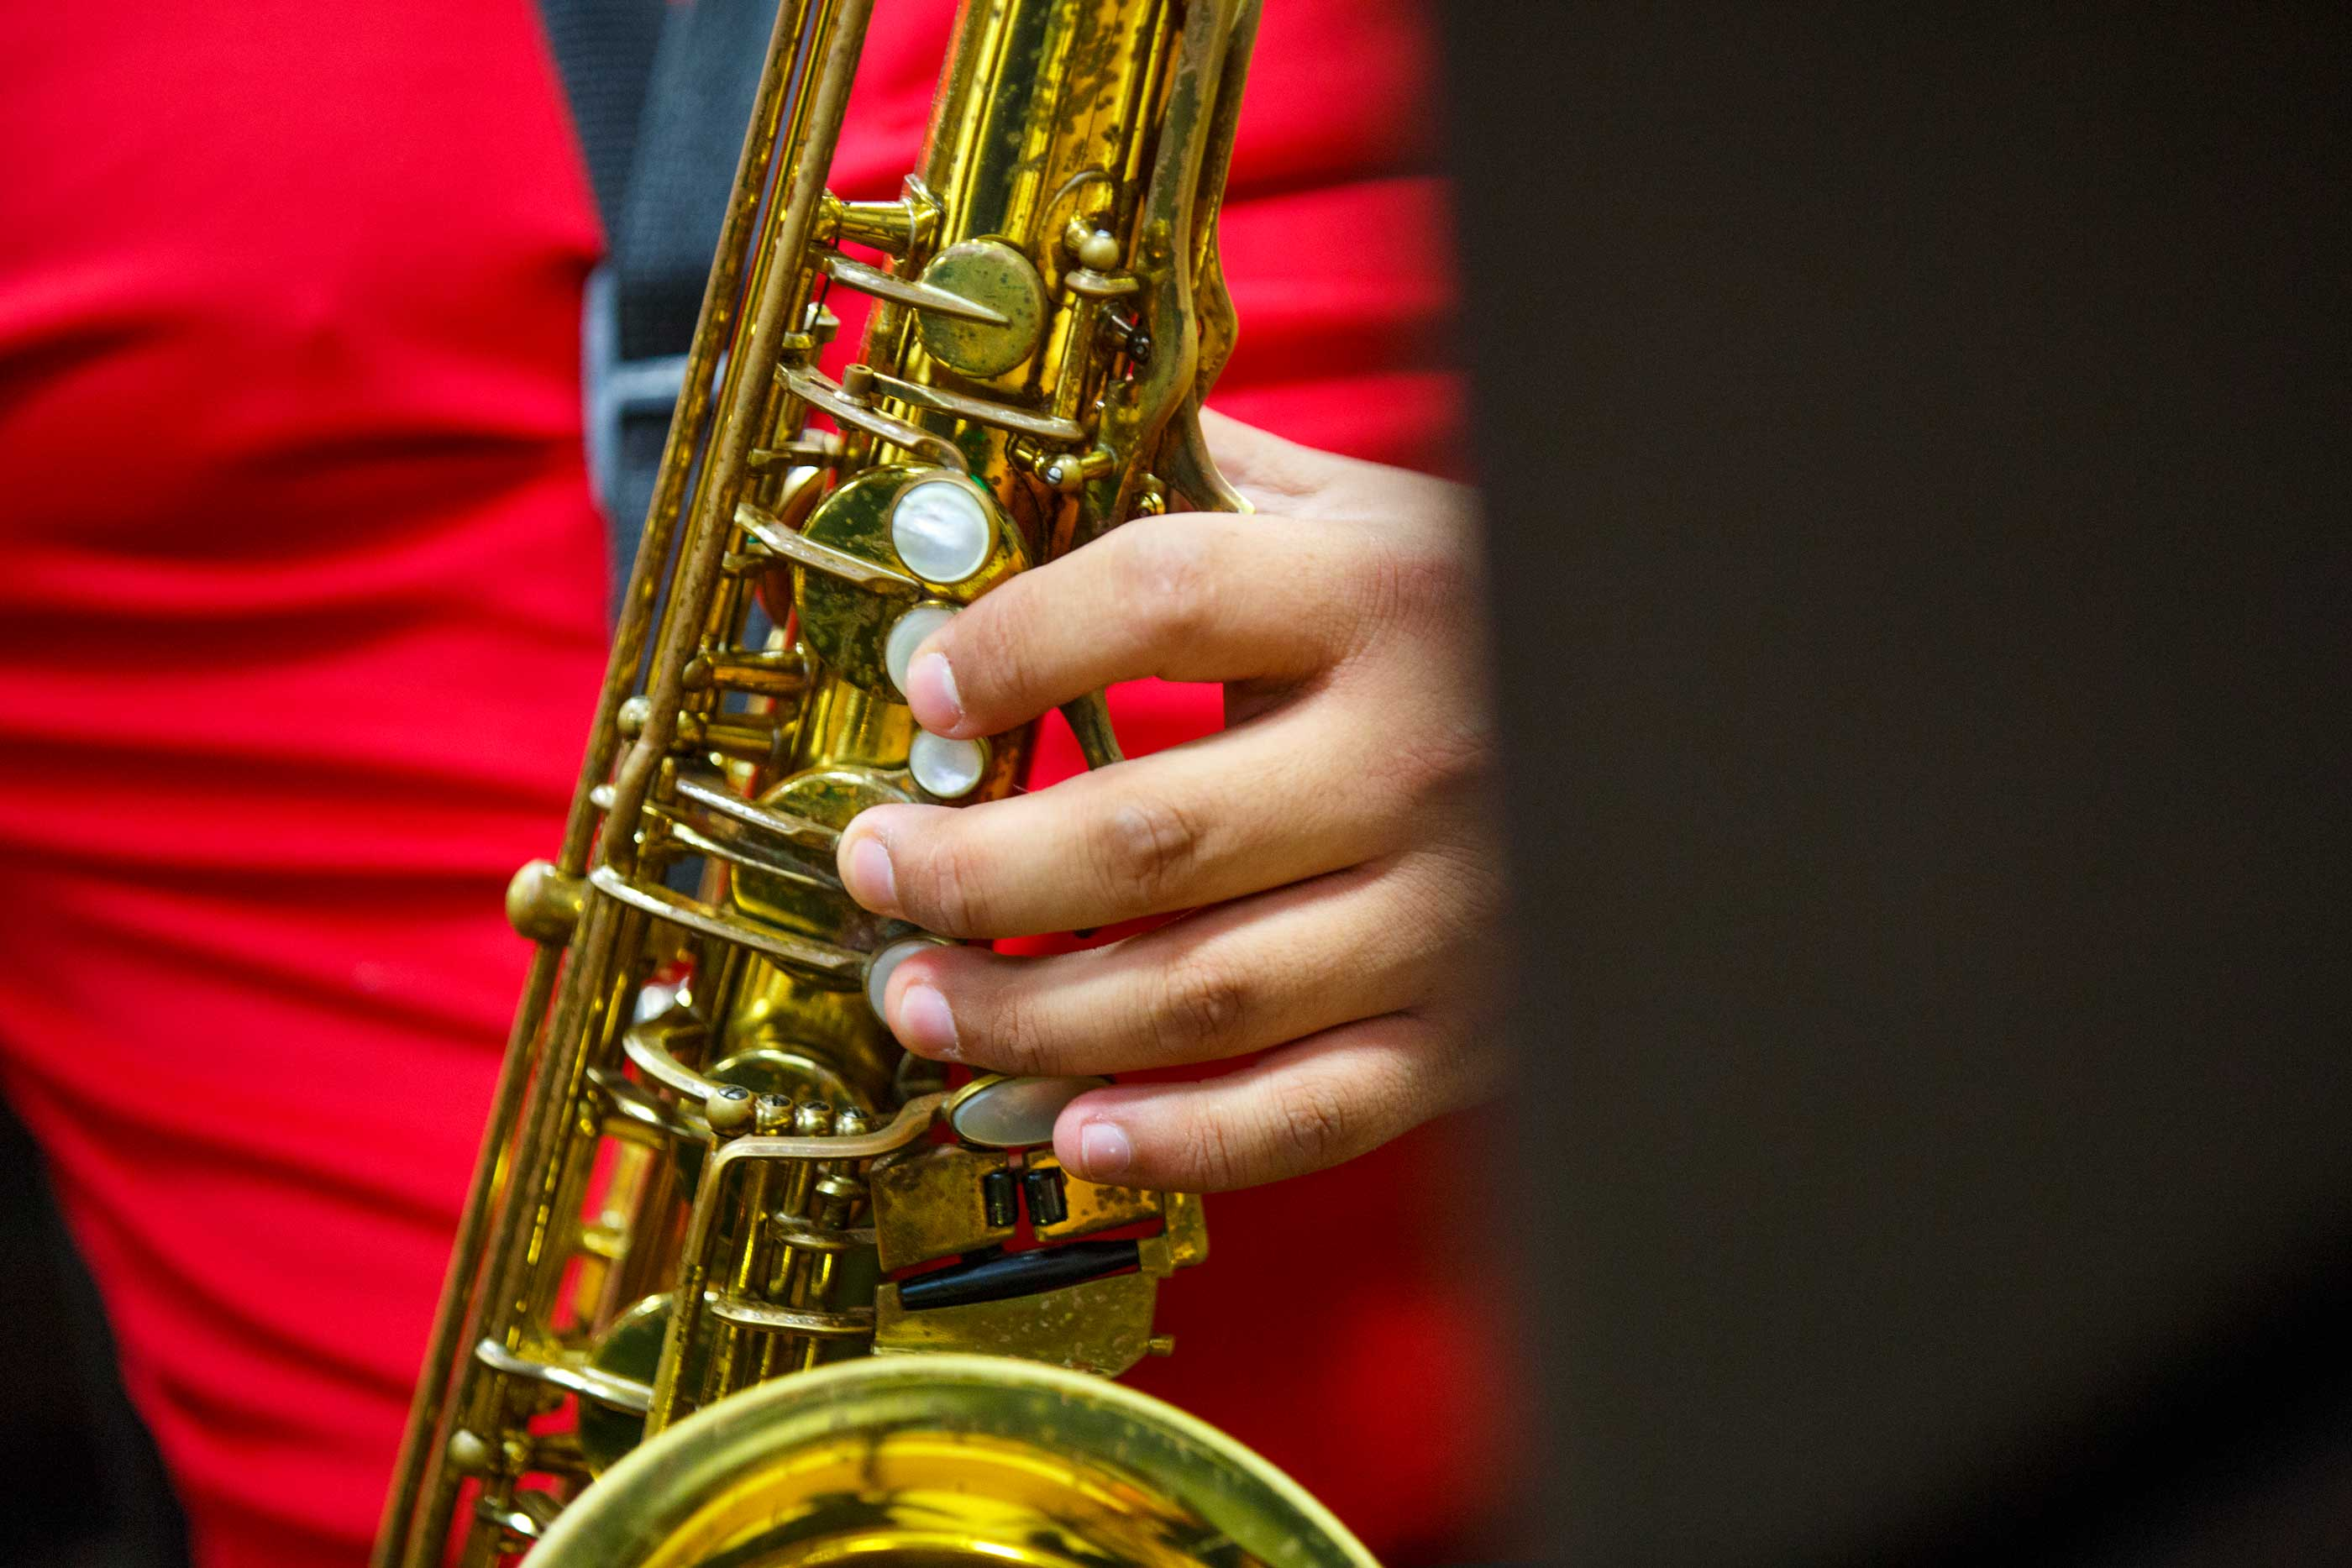 3rd Annual Lamar University Brass Festival Brings Music, Master Classes and More on March 1-3